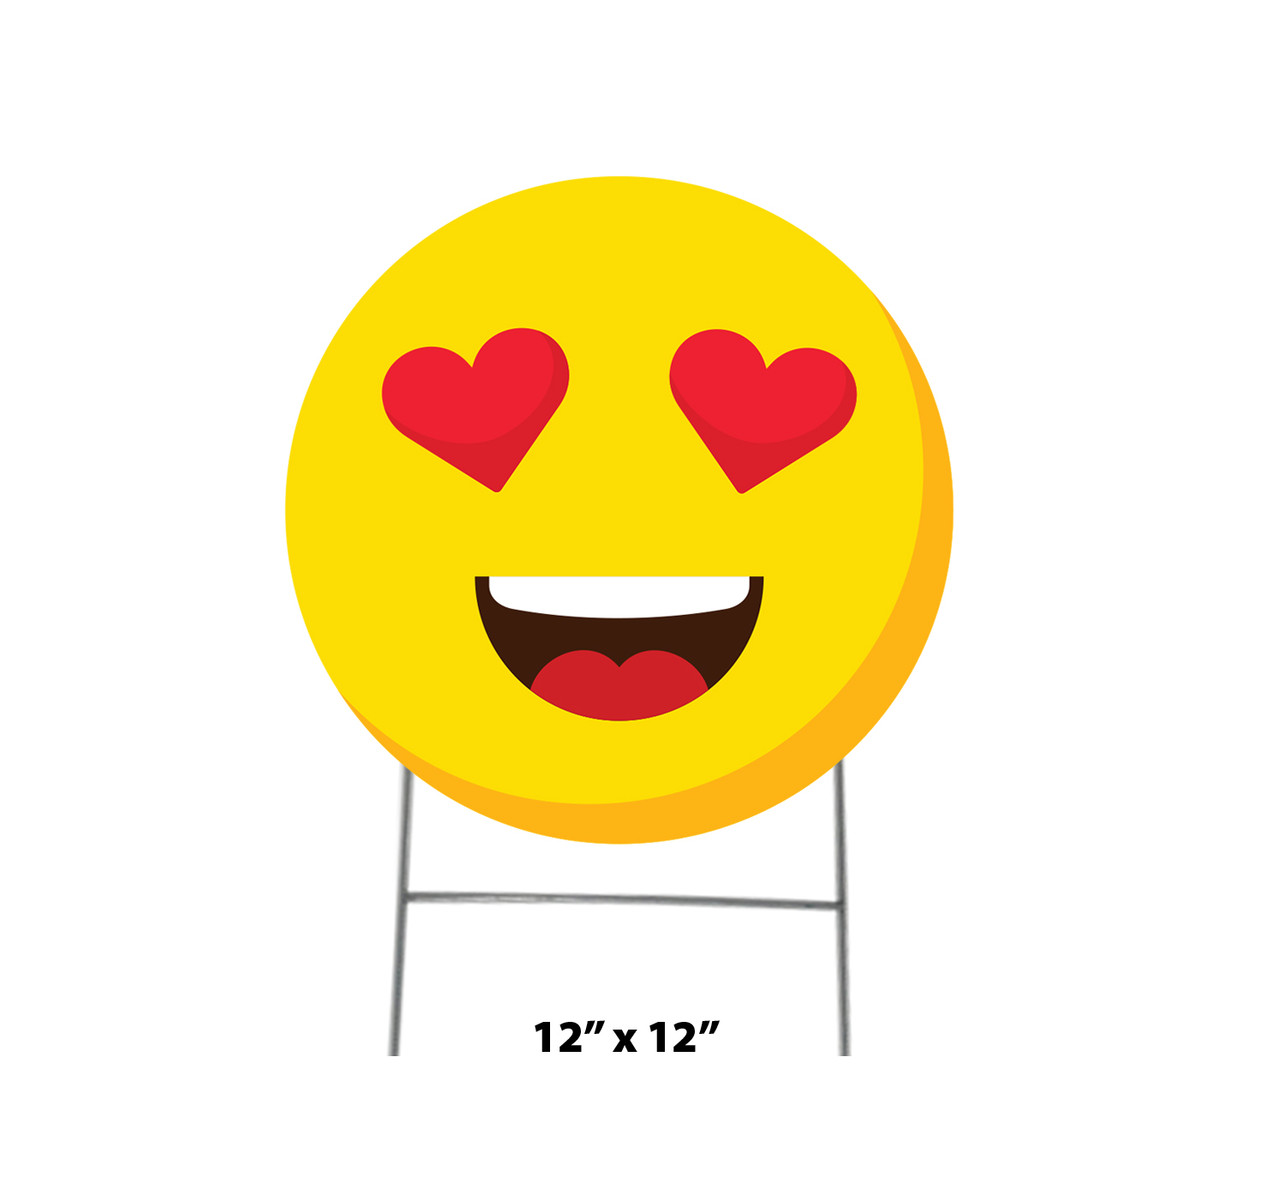 Coroplast outdoor yard sign icon of an emoji with heart eyes with dimensions.